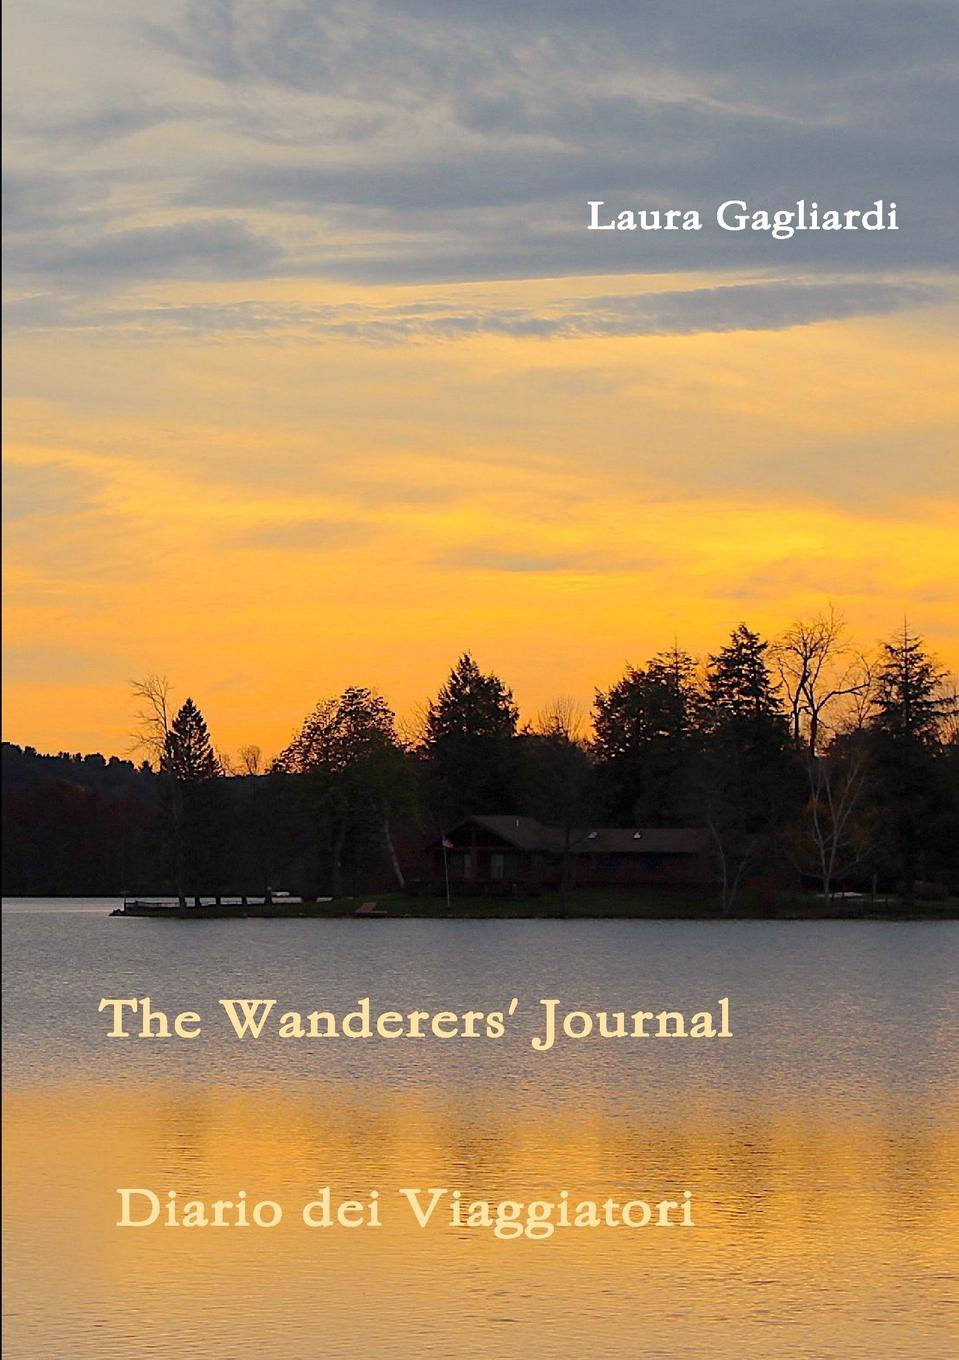 Laura Gagliardi The Wanderers. Journal - Diario dei Viaggiatori teri b racey master of the storm journal mindful writing and sketching for self mastery page 5 page 5